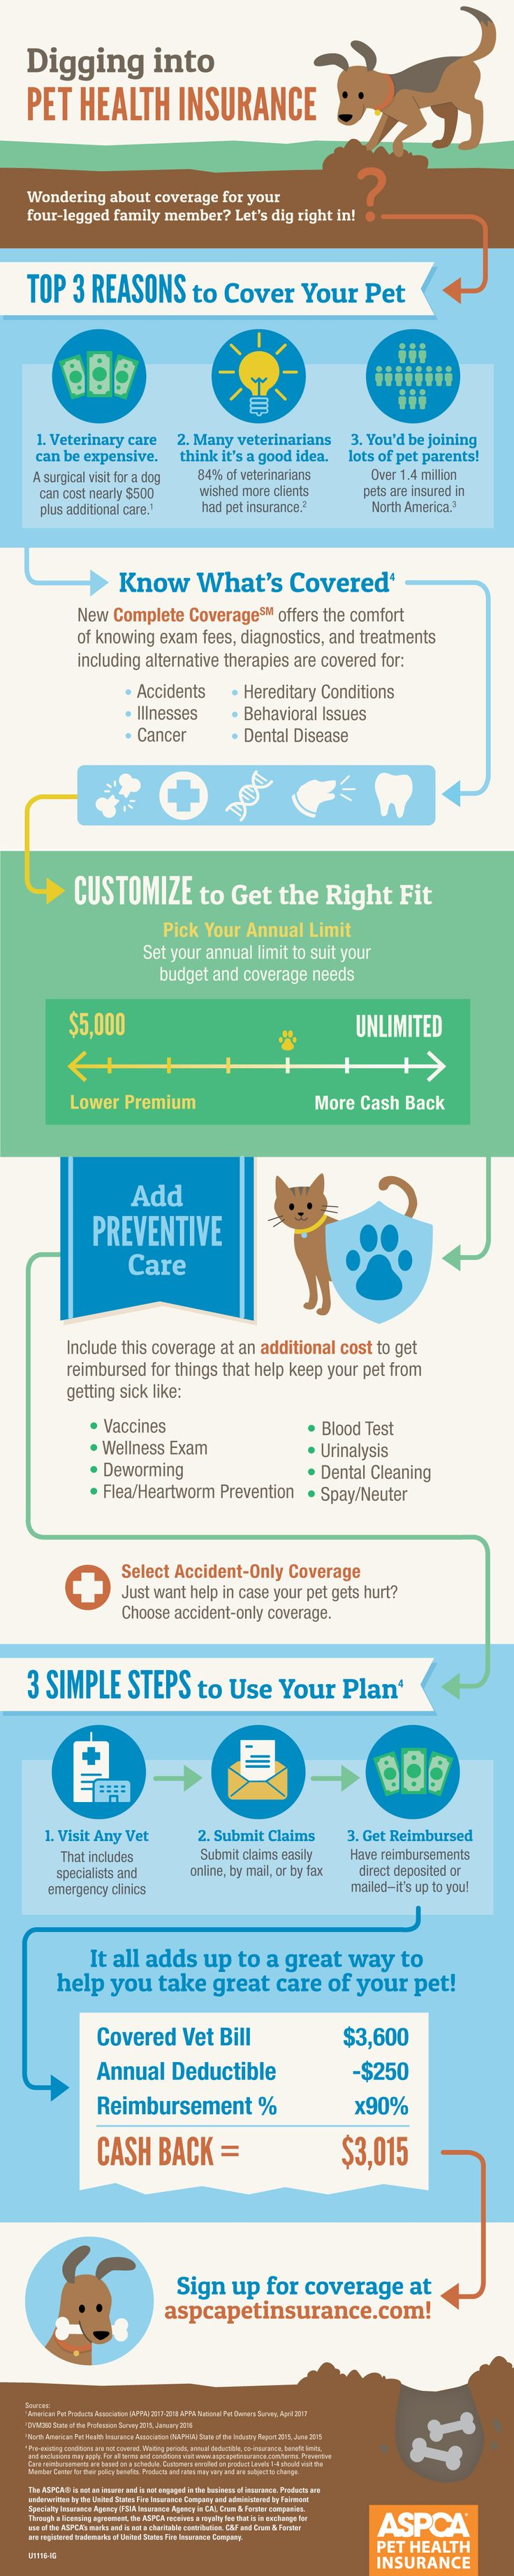 Are you wondering about pet insurance? Let's dig right in to see how it can help make a difference for you and your four-legged family member.